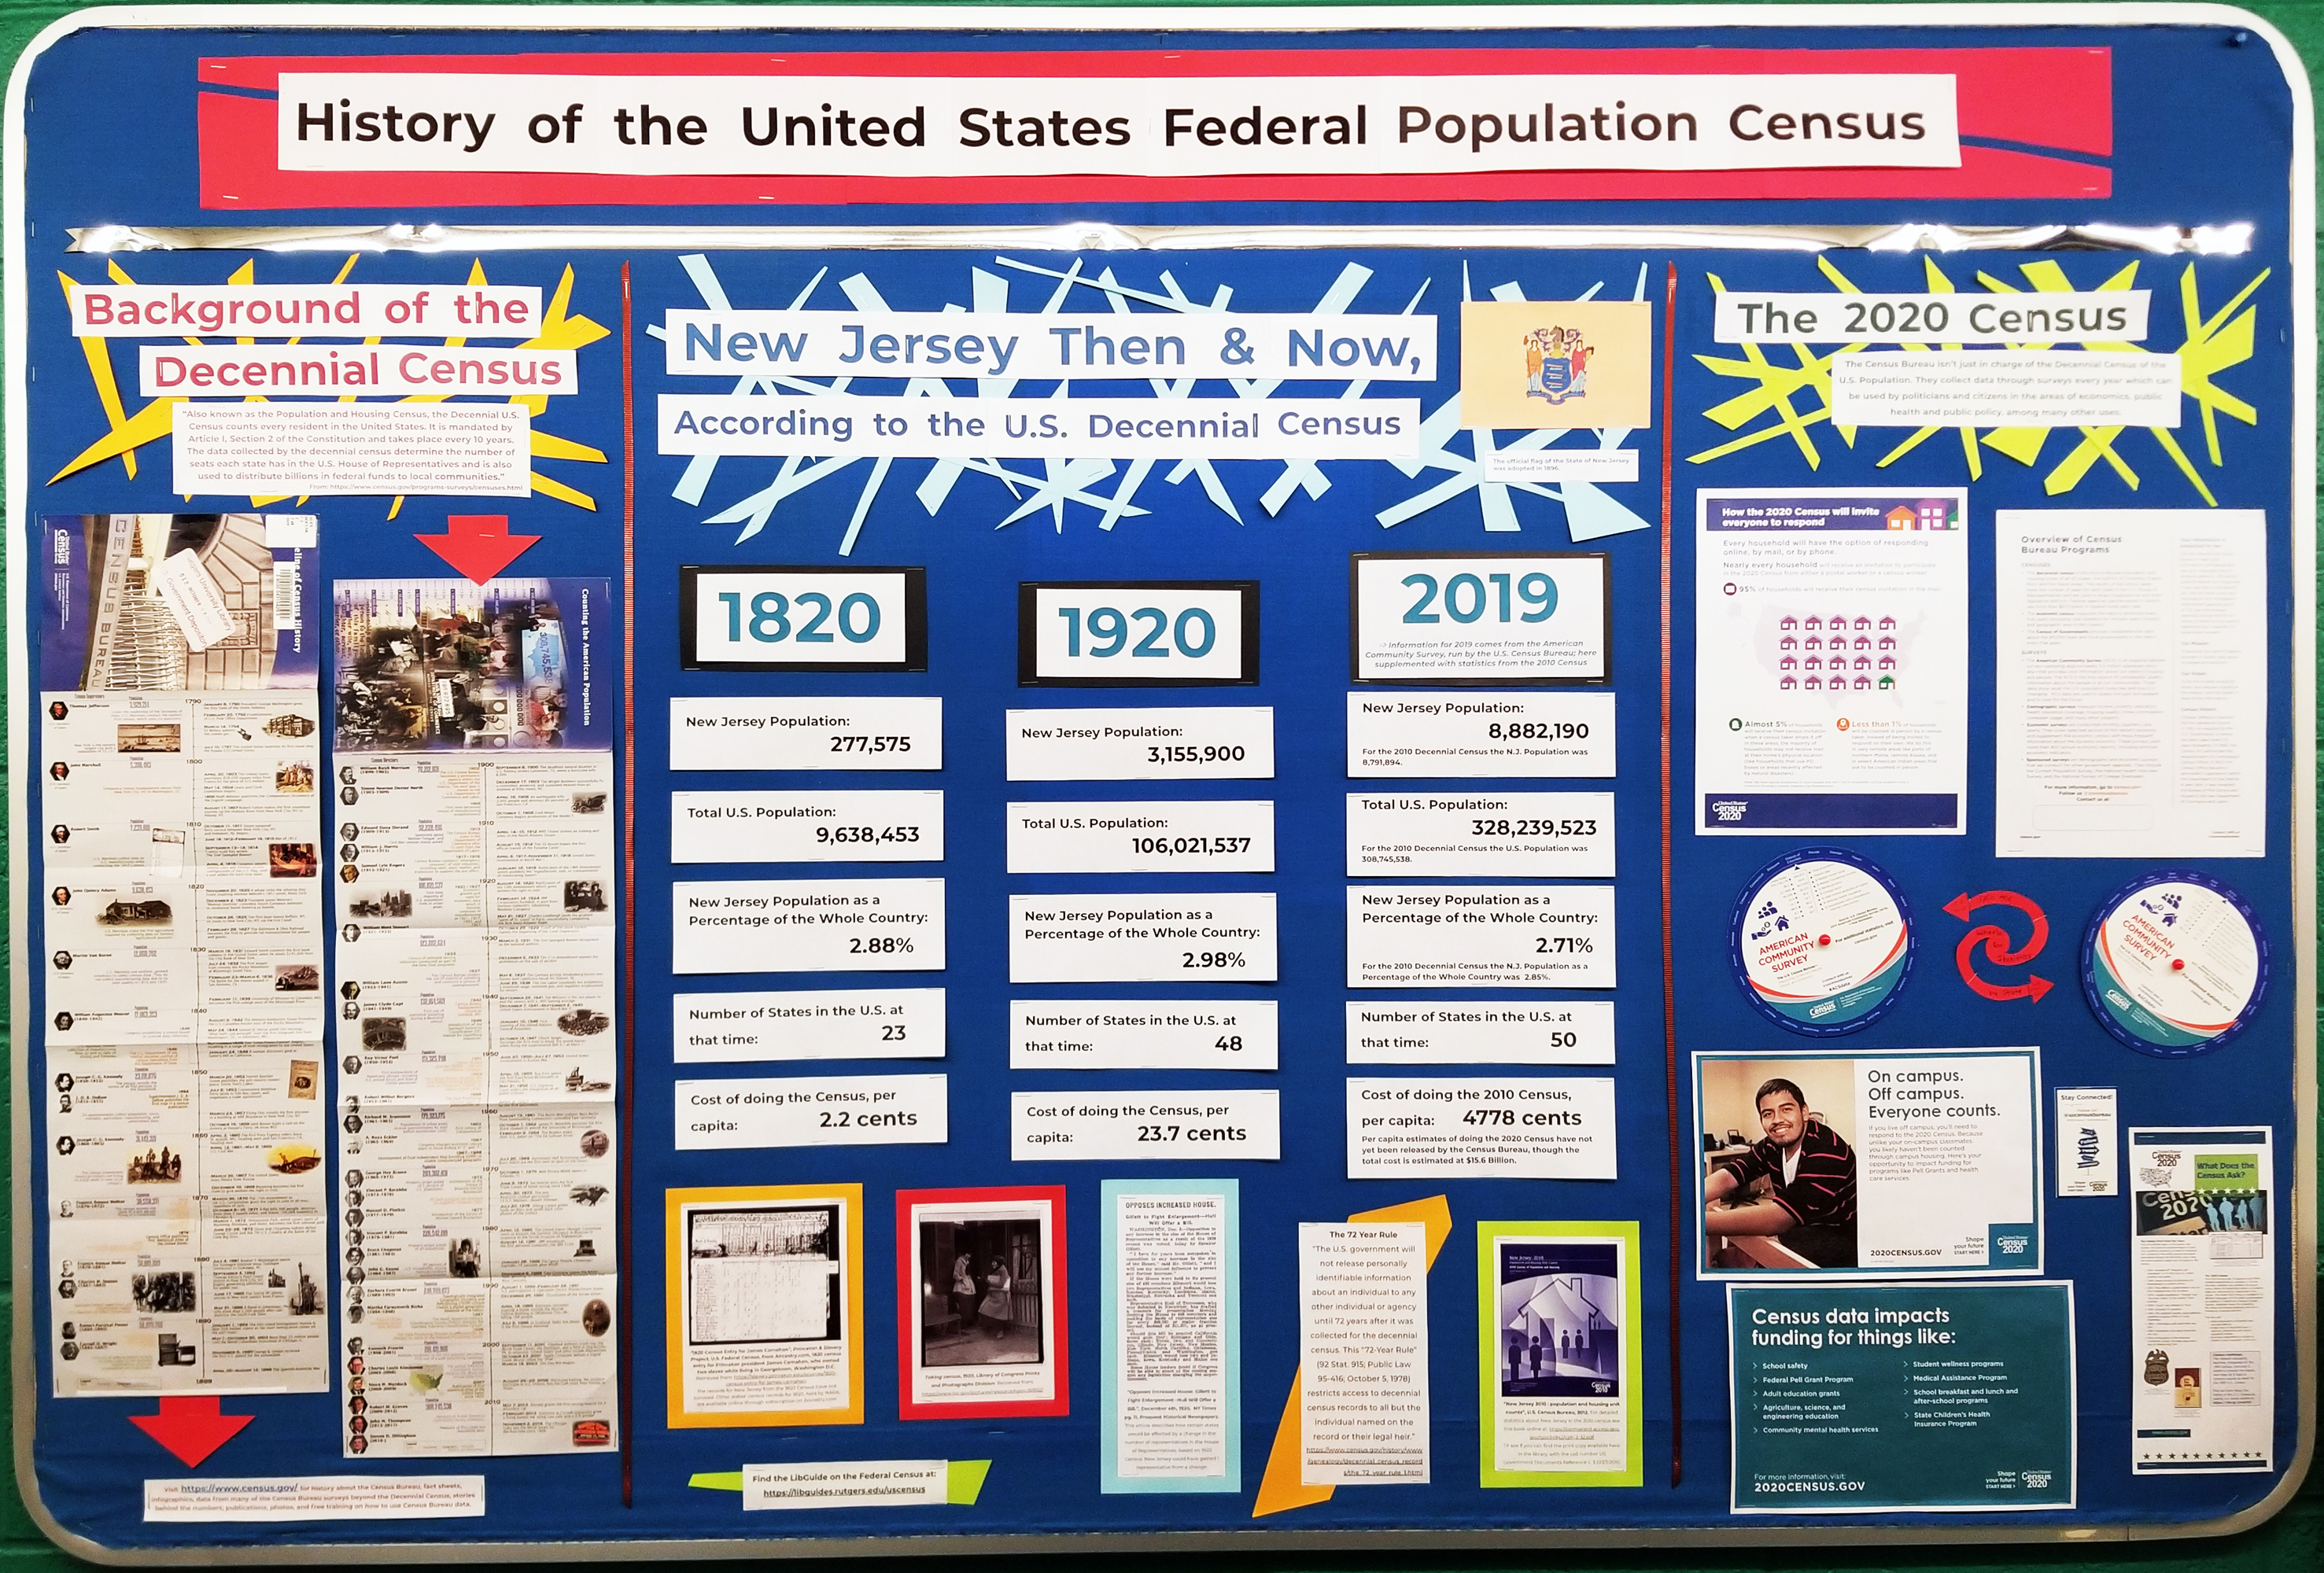 Bulletin board display on history of the US census